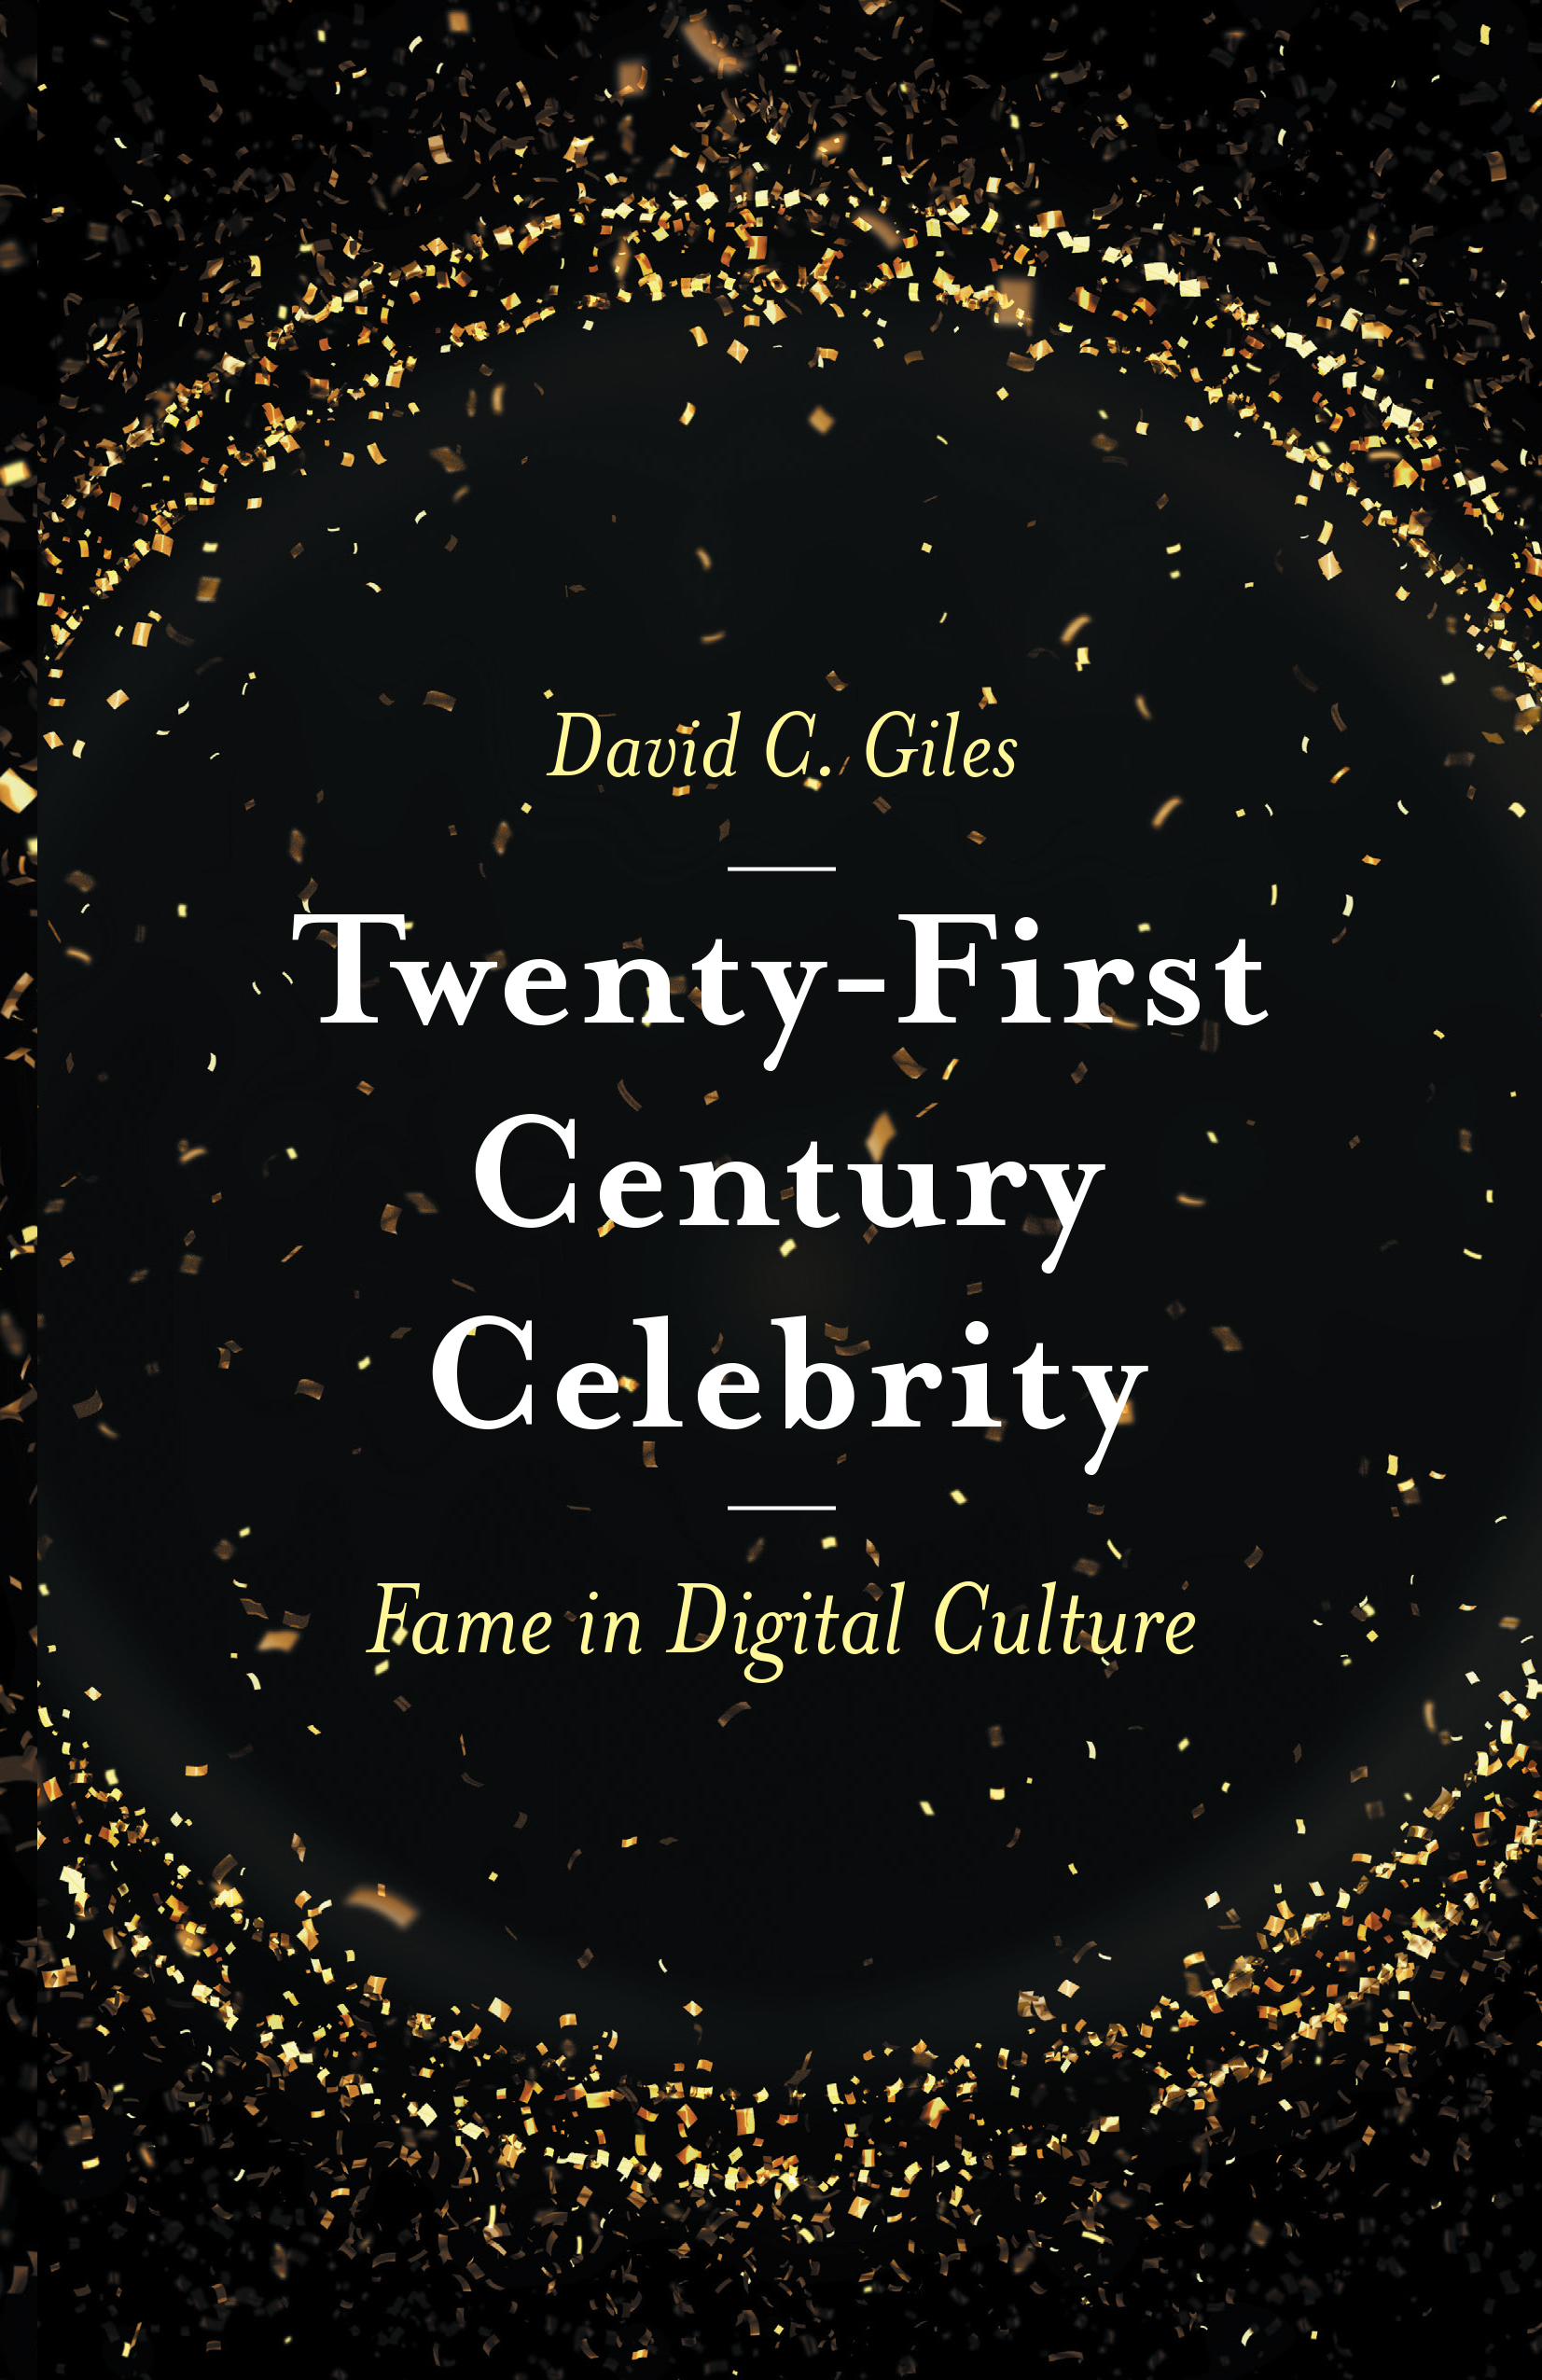 Twenty-first Century Celebrity: Fame In Digital Culture